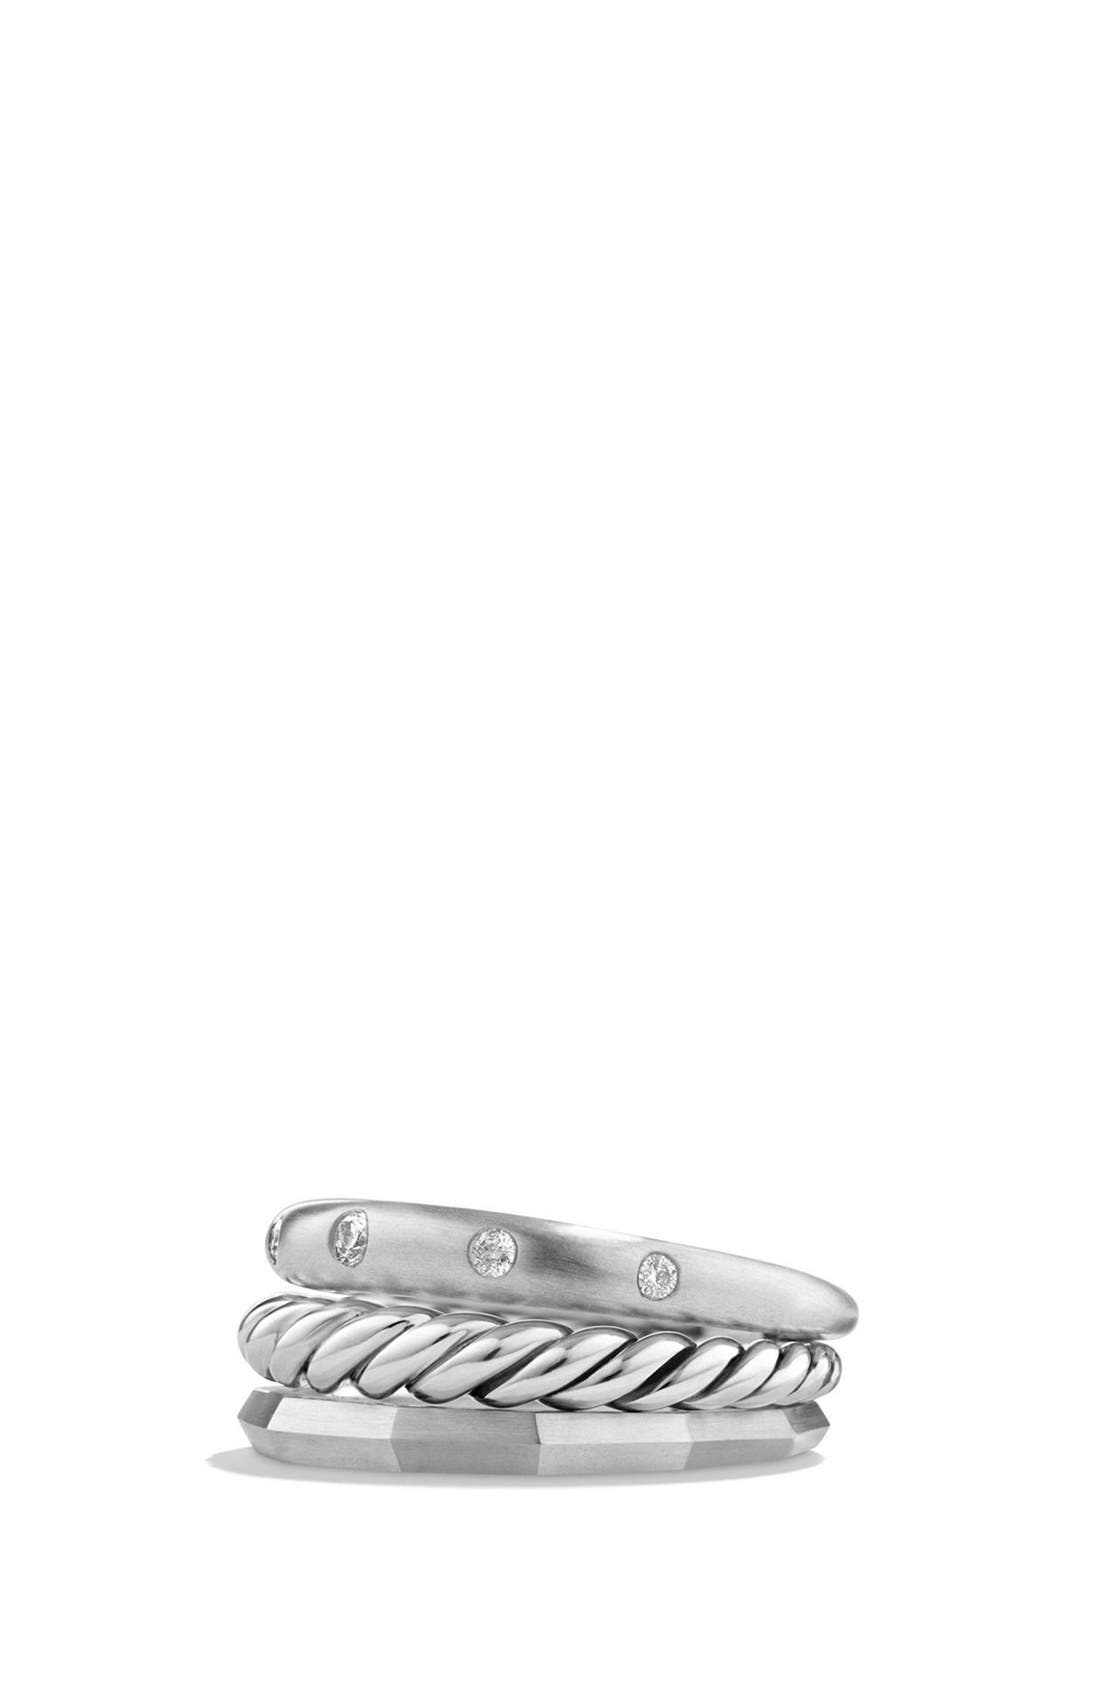 'Stax' Ring with Diamonds,                         Main,                         color, Silver